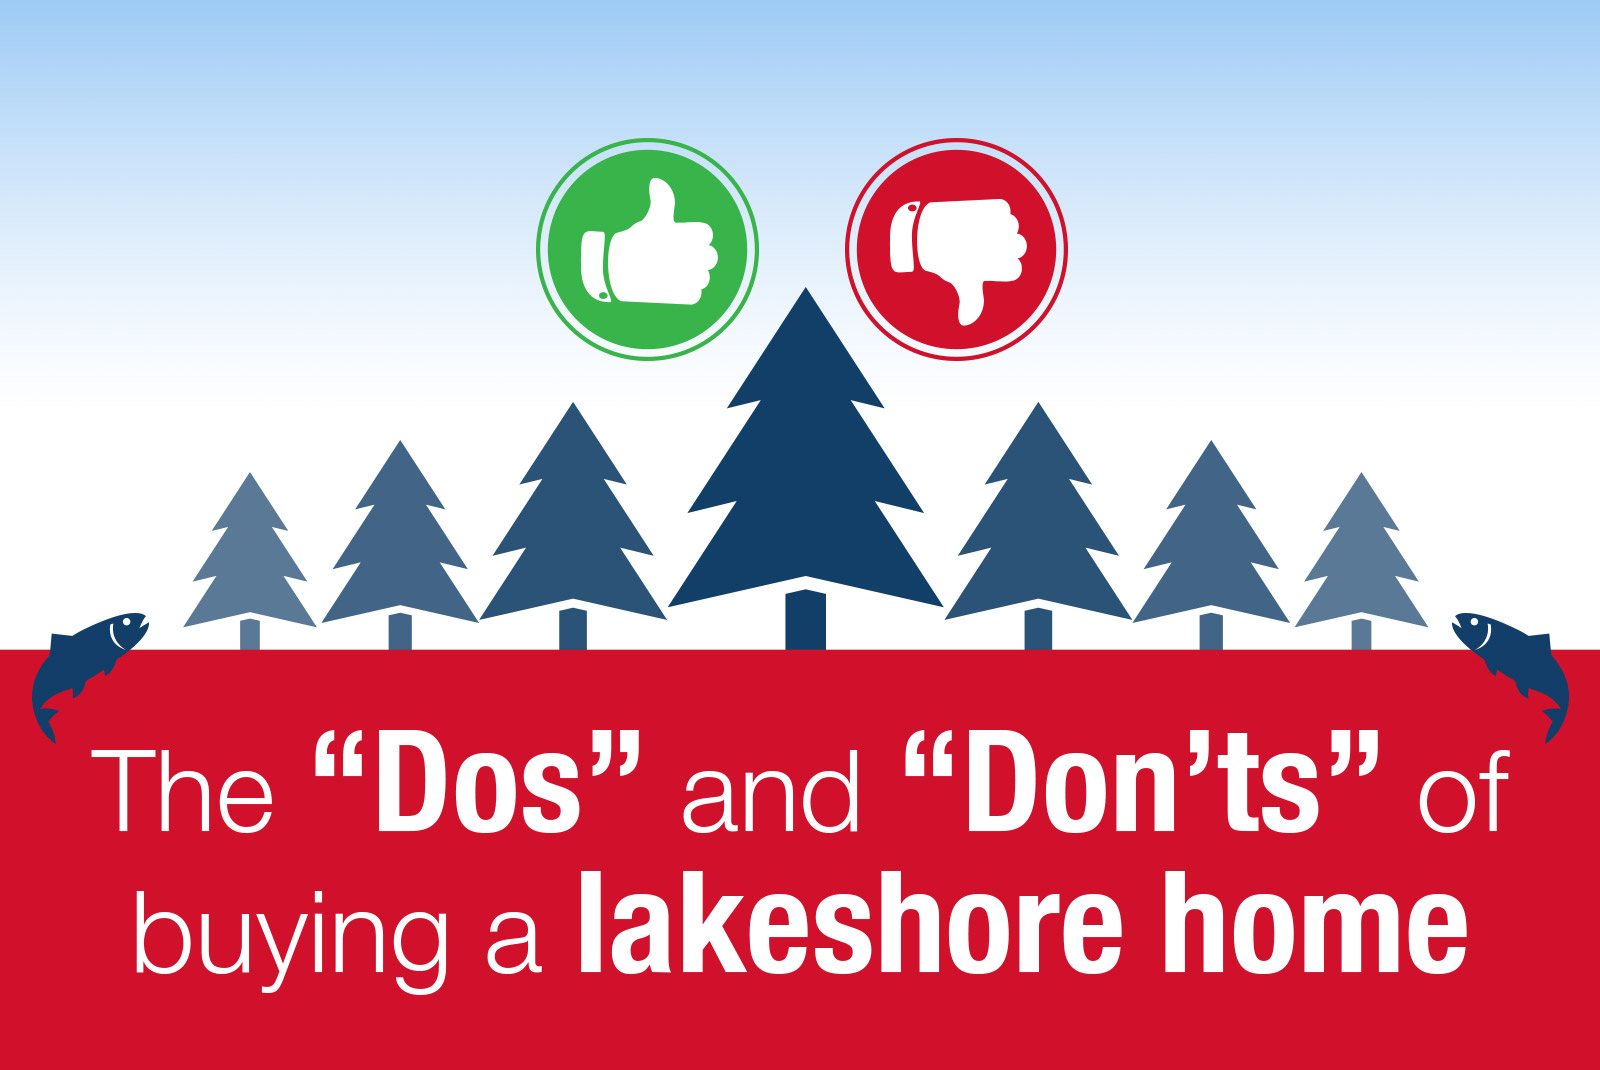 lakeshore chatrooms Search the world's information, including webpages, images, videos and more google has many special features to help you find exactly what you're looking for.